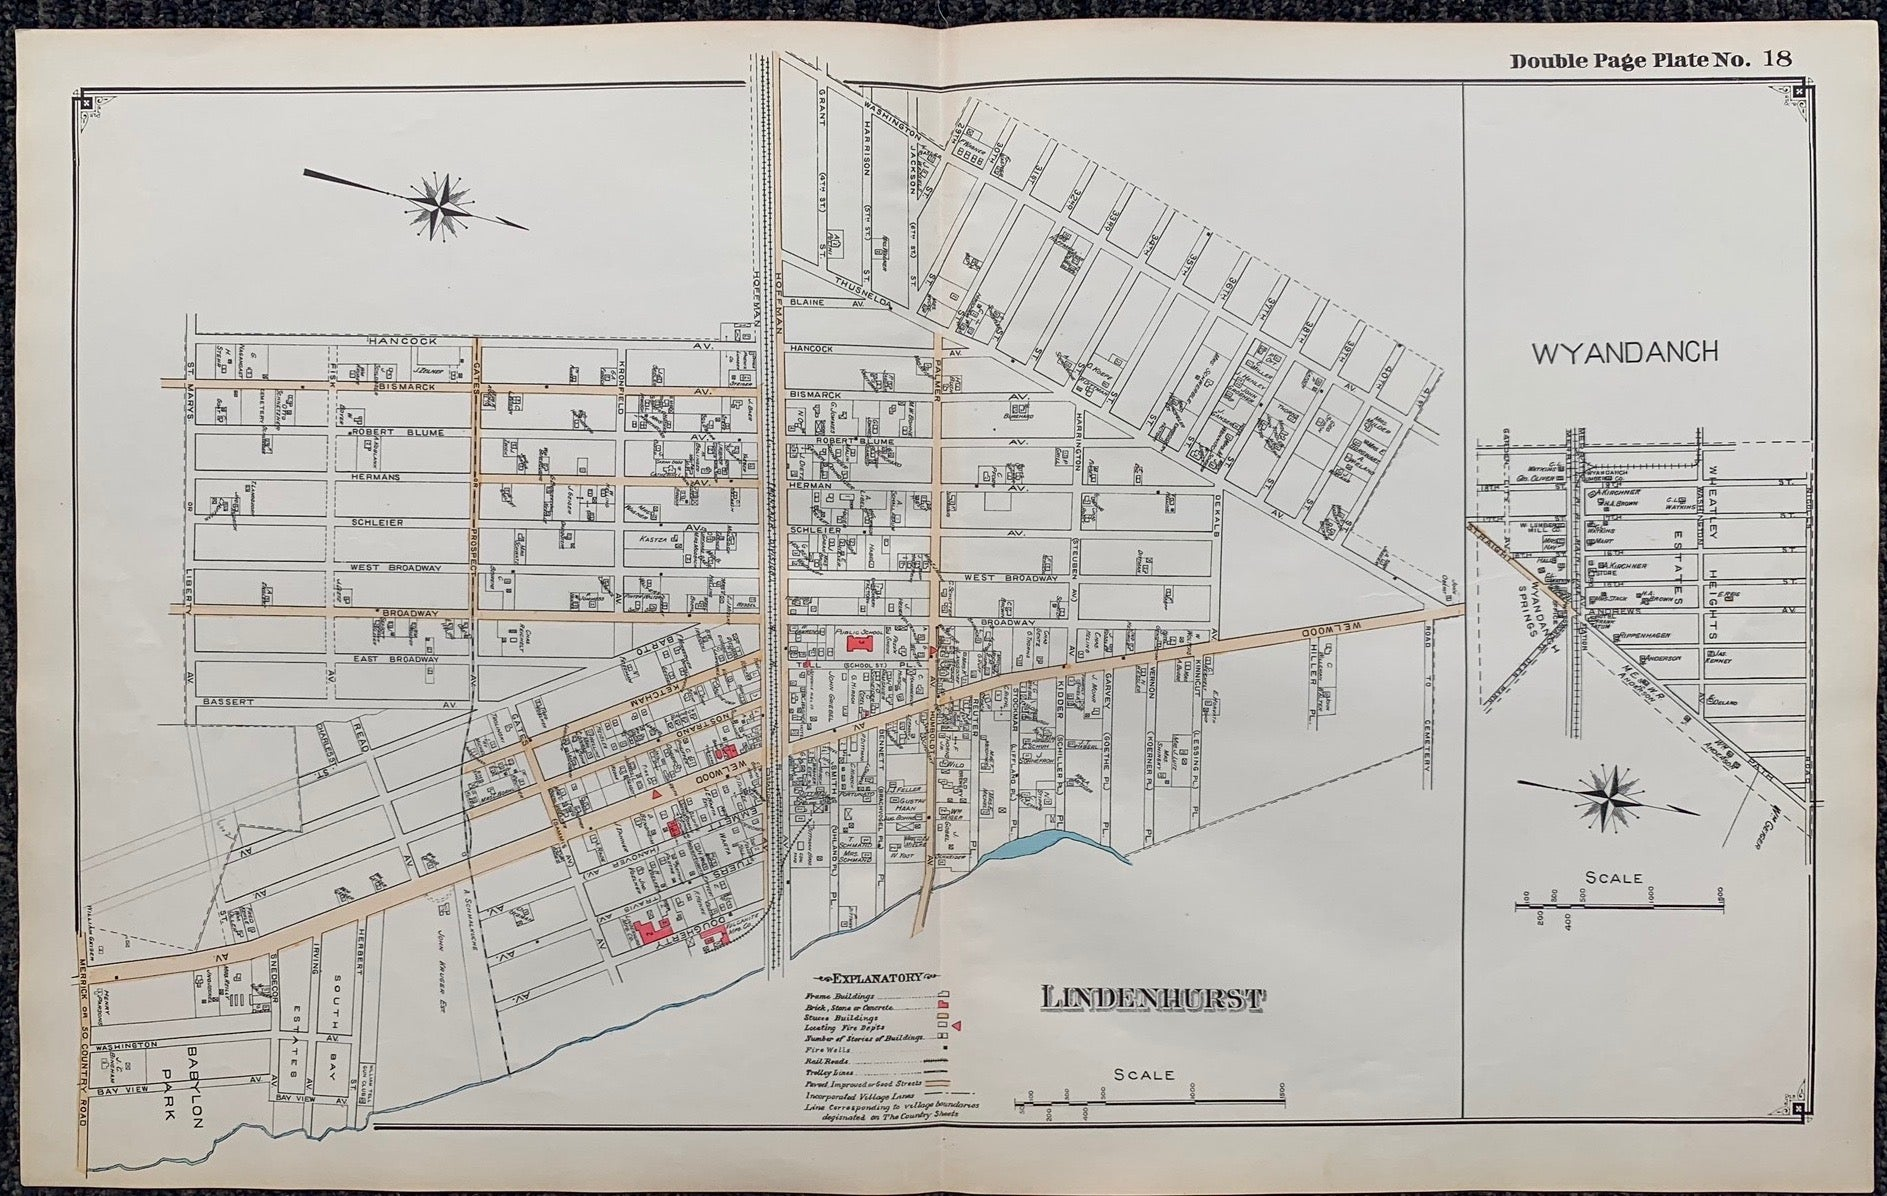 Long Island Index Map No.2 - Plate 18 Lindenhurst